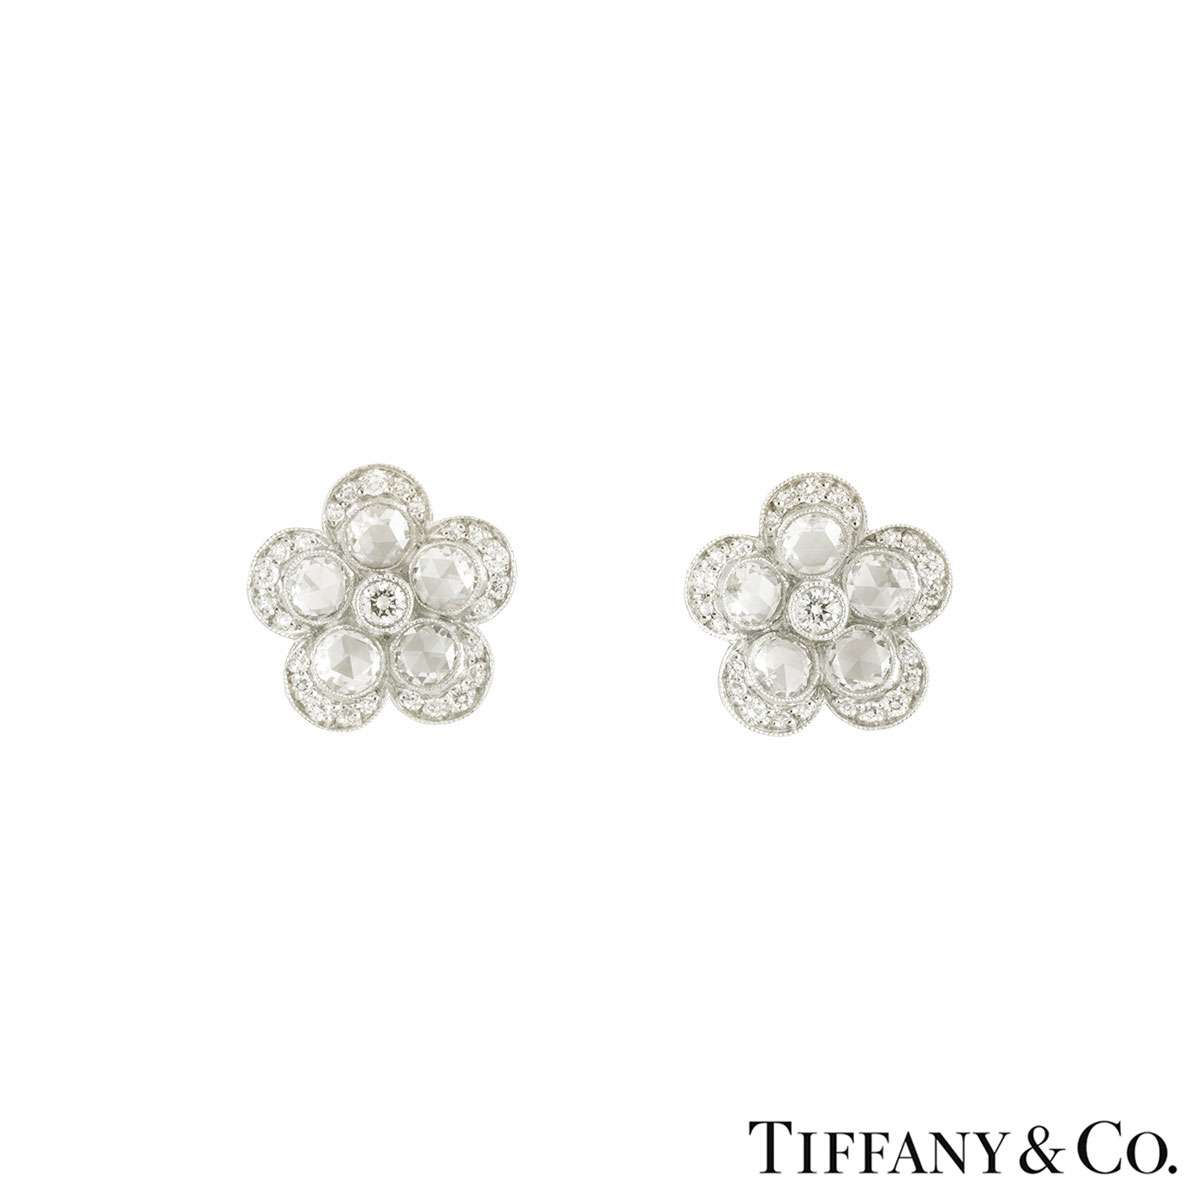 Tiffany & Co. Platinum Diamond Garden Flower Earrings 1.06ct G+/VS+